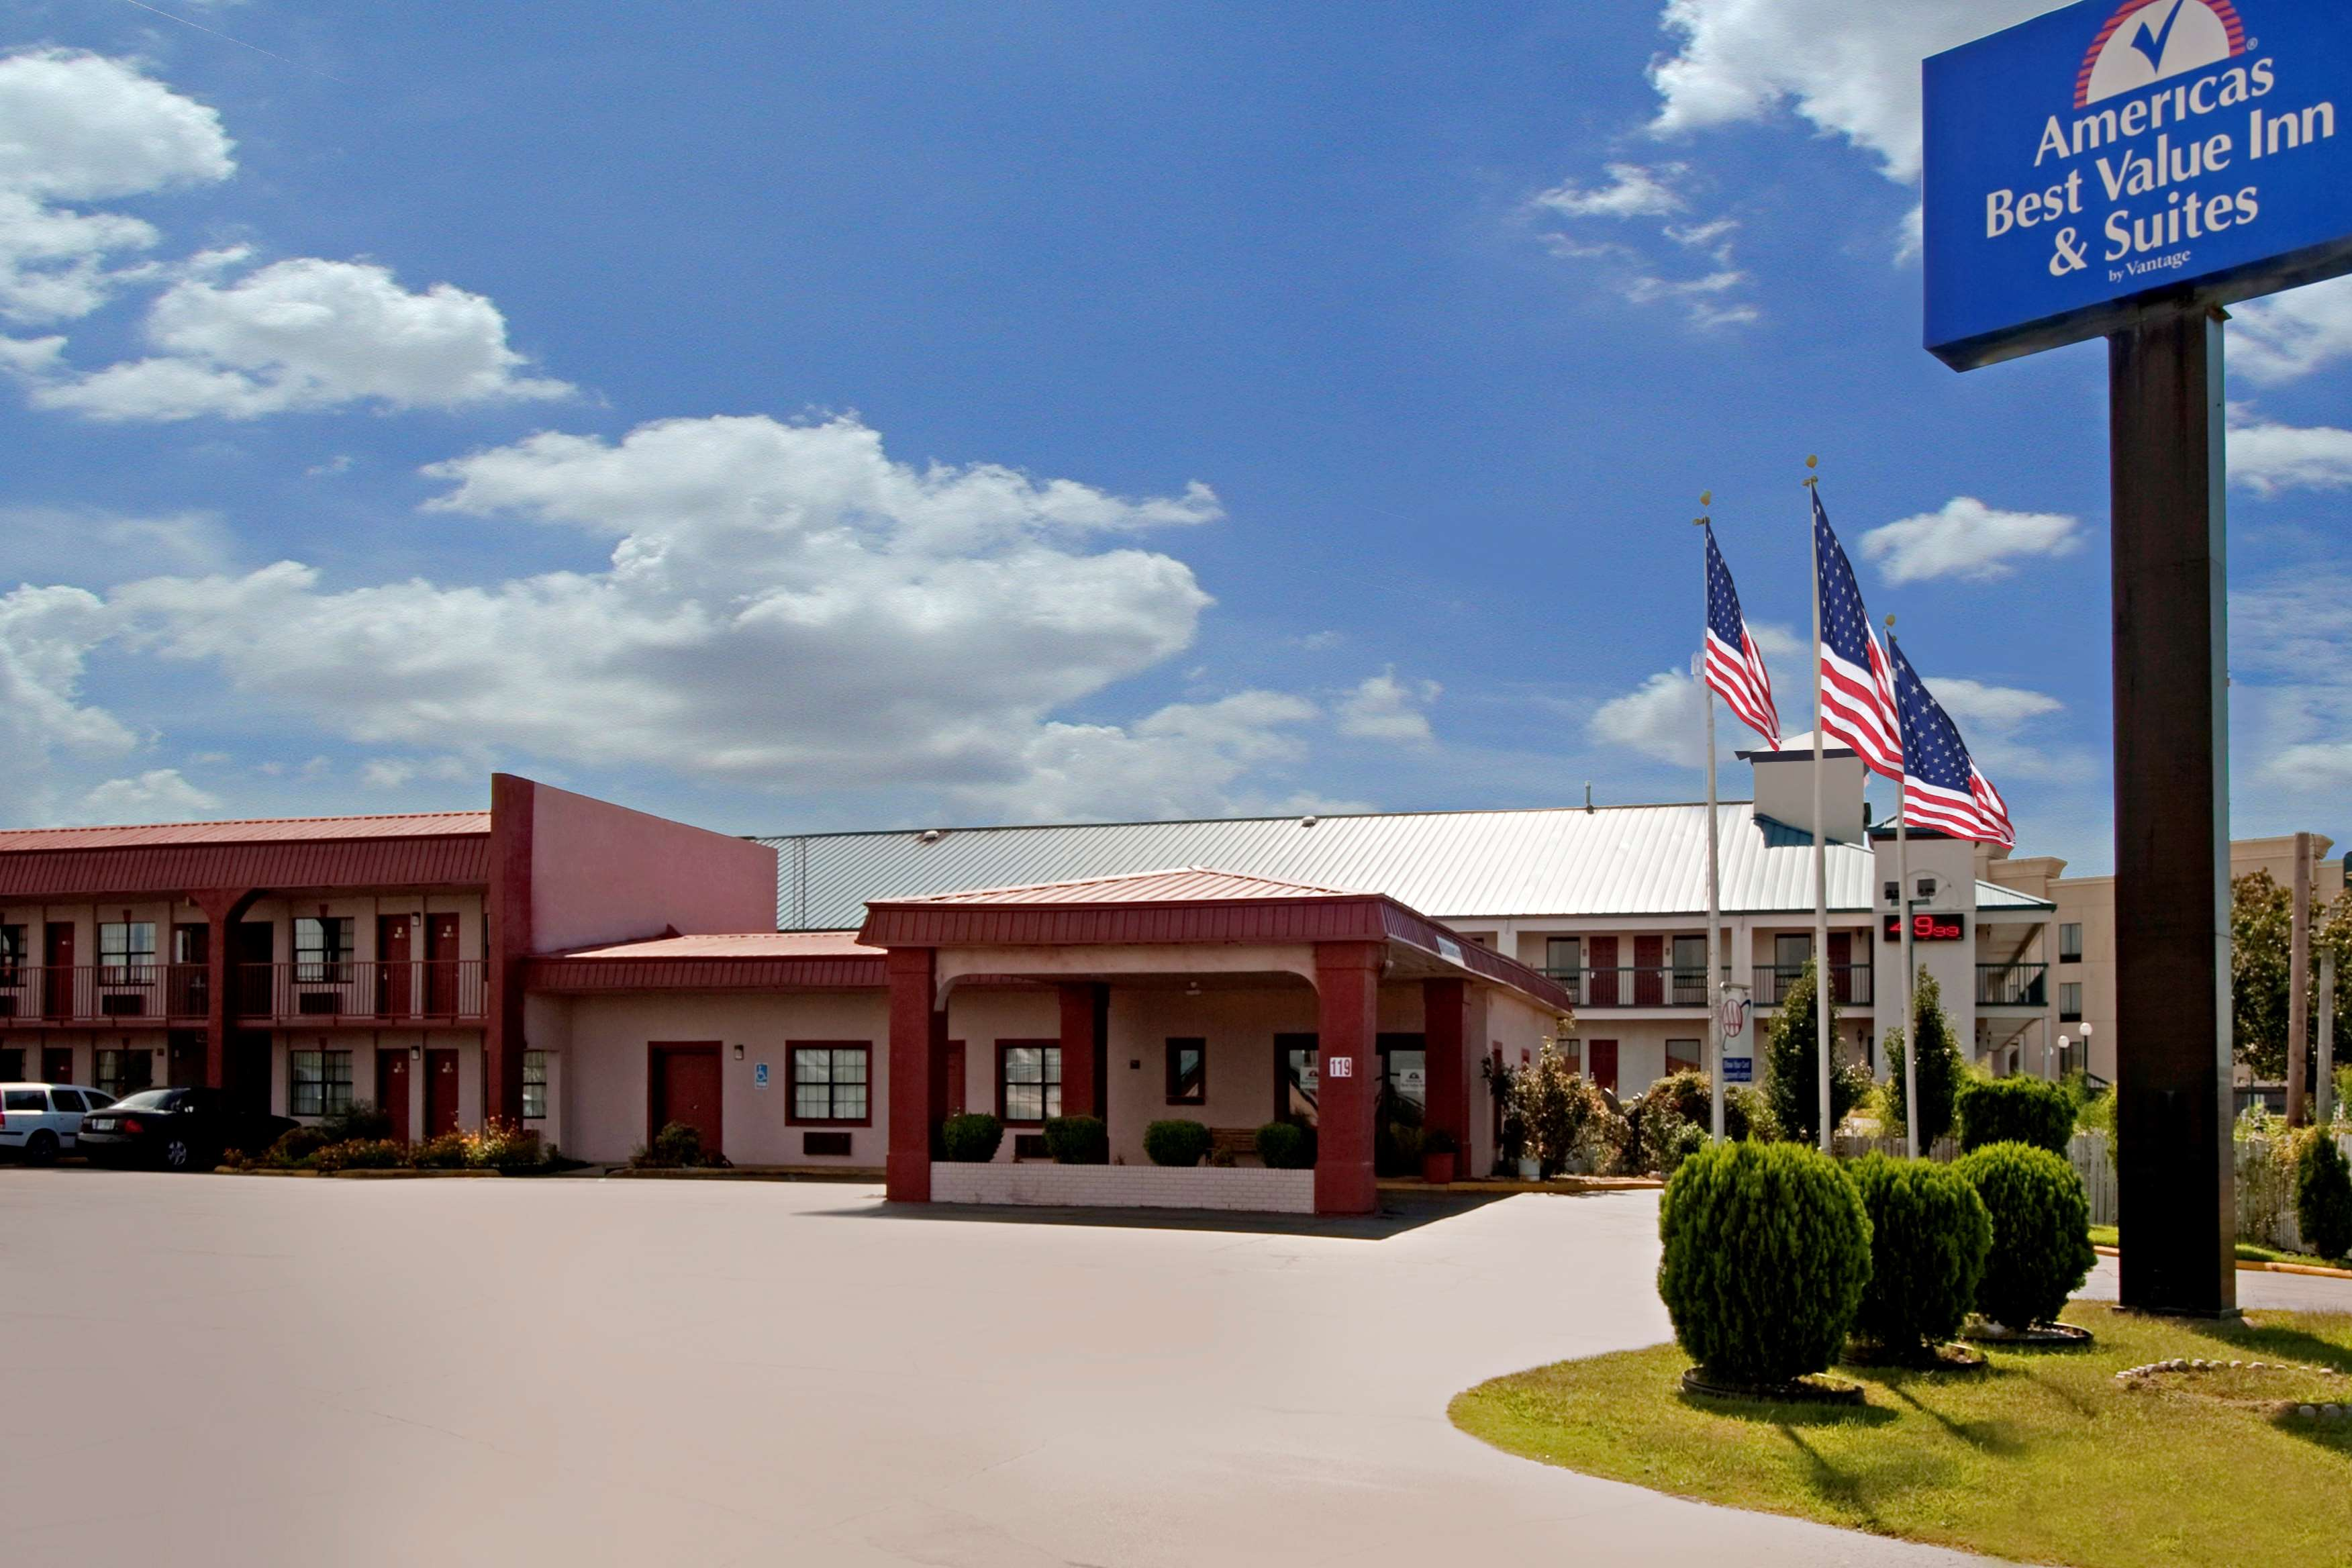 Americas best value inn canton coupons near me in canton for Americas best coupon code